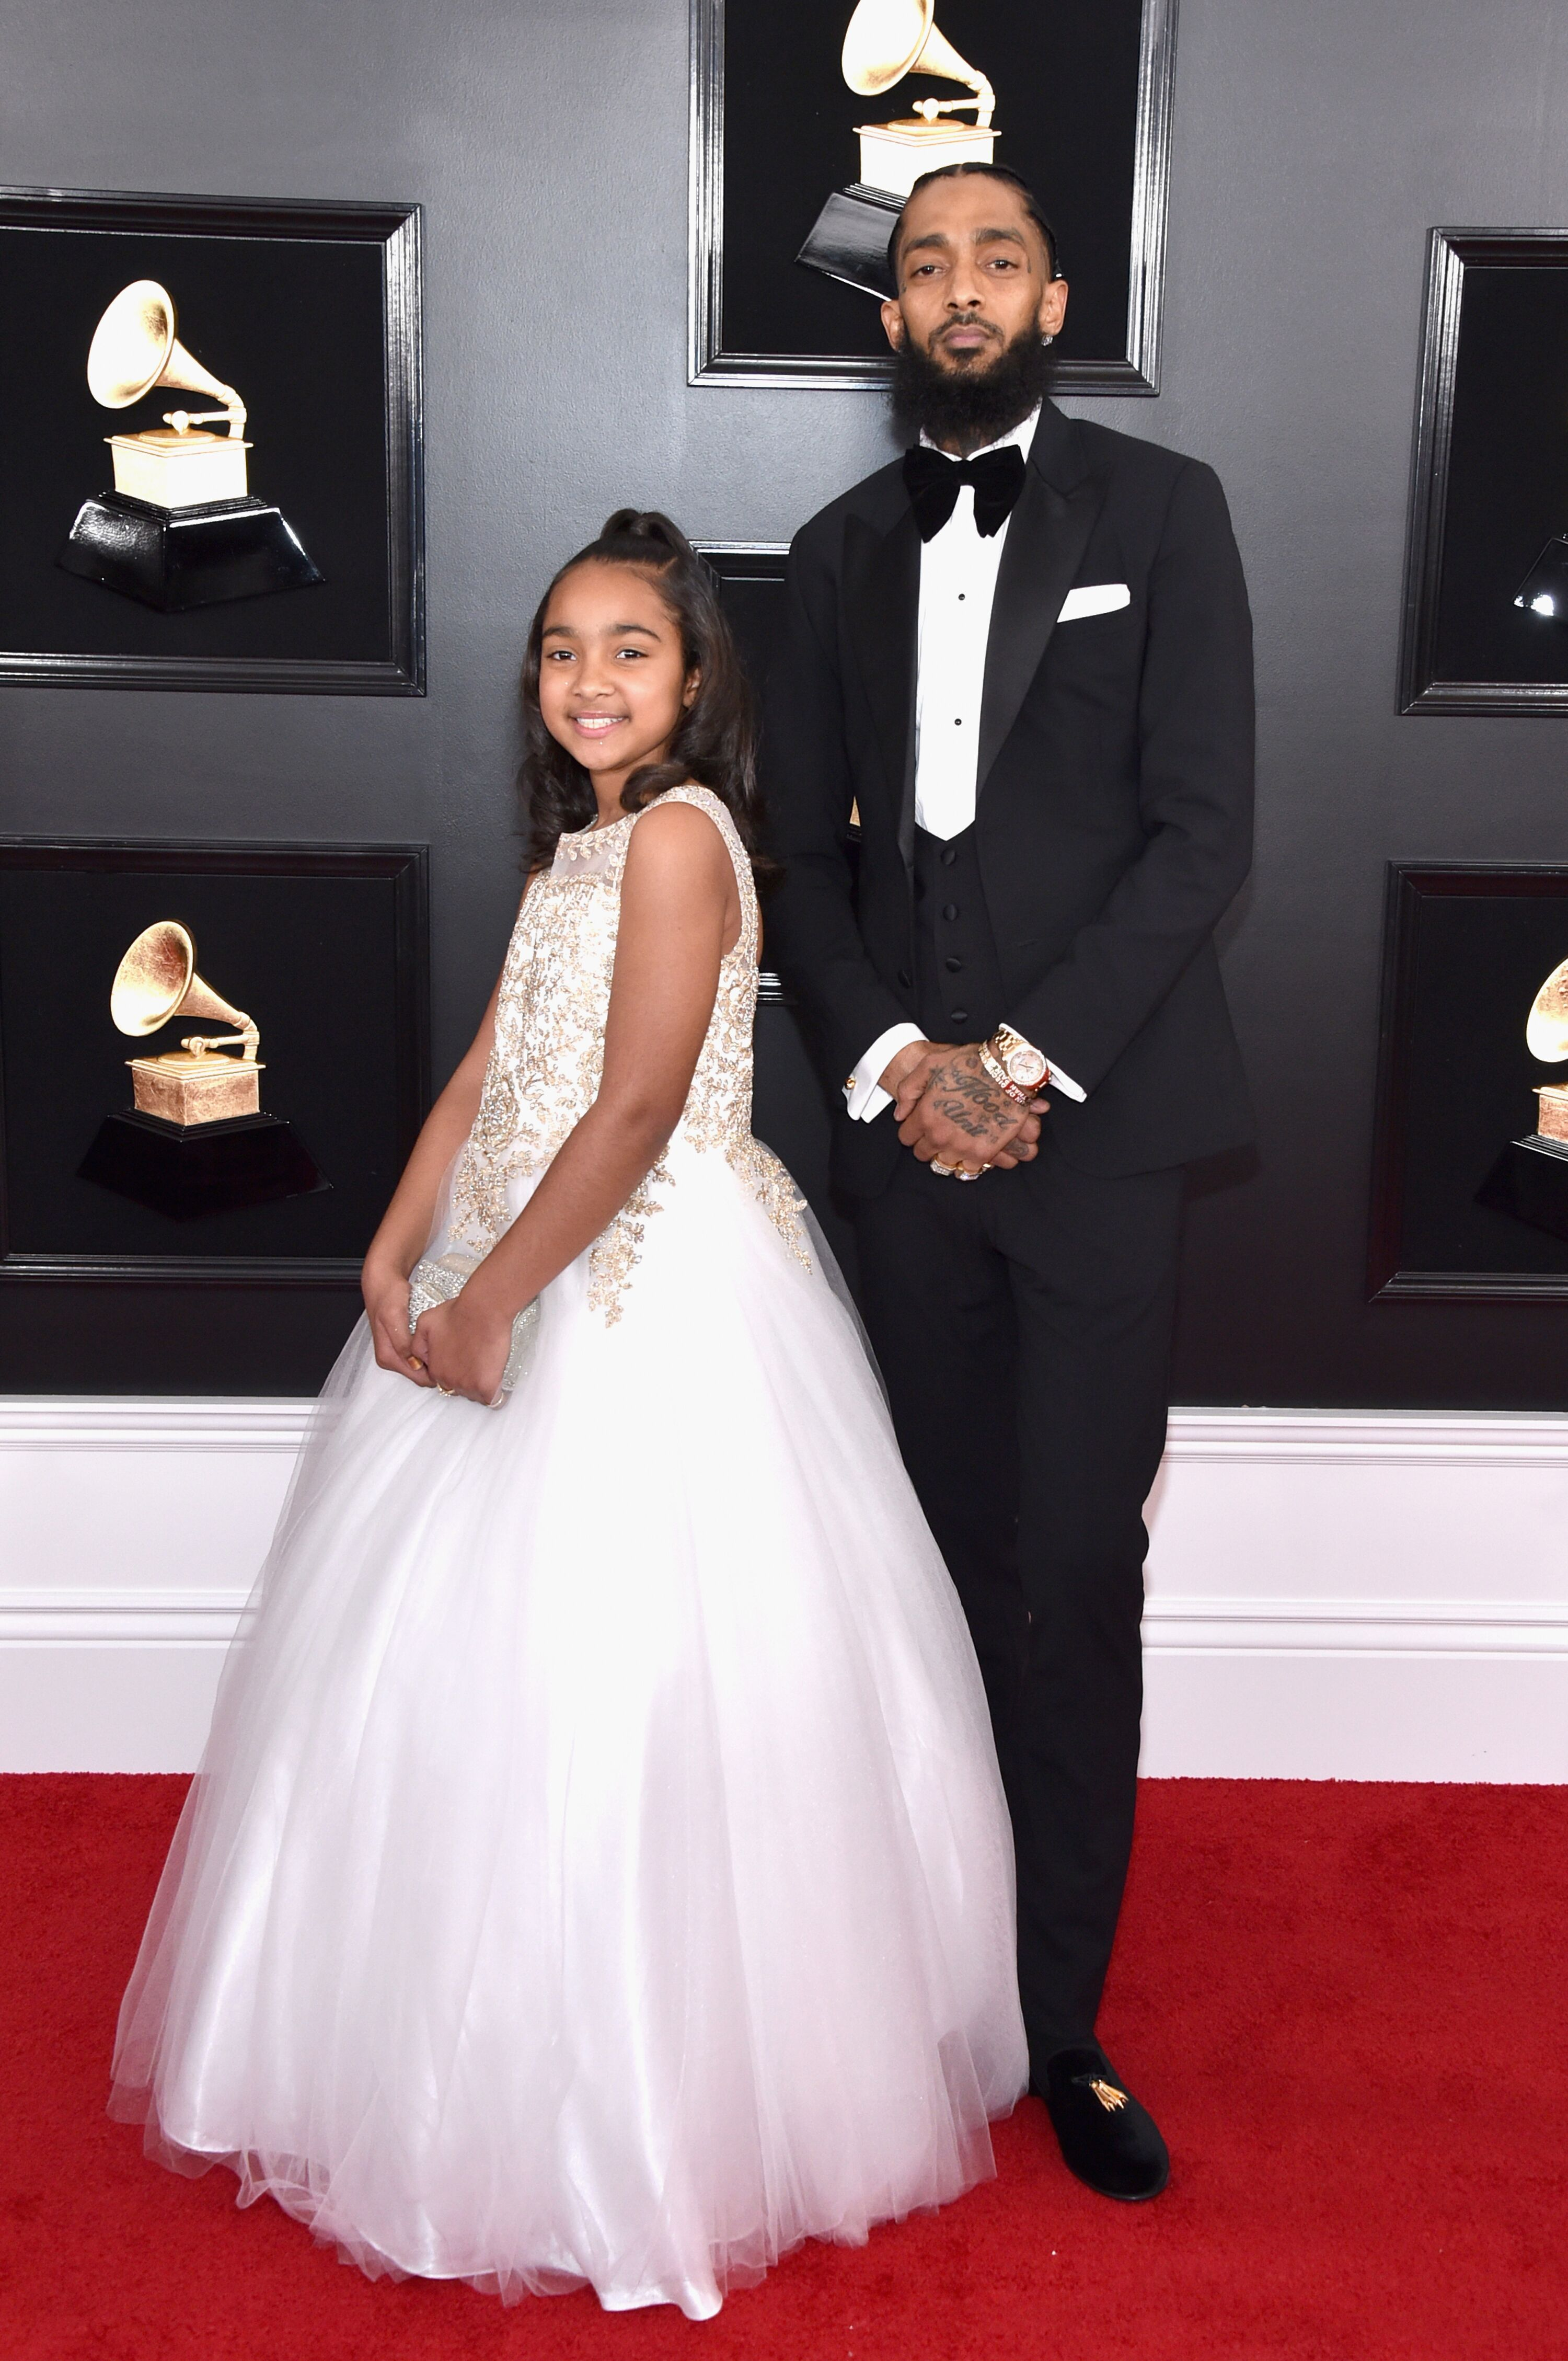 Nipsey Hussle and his daughter Emani Asghedom at the Grammys/ Source: Getty Imgaes